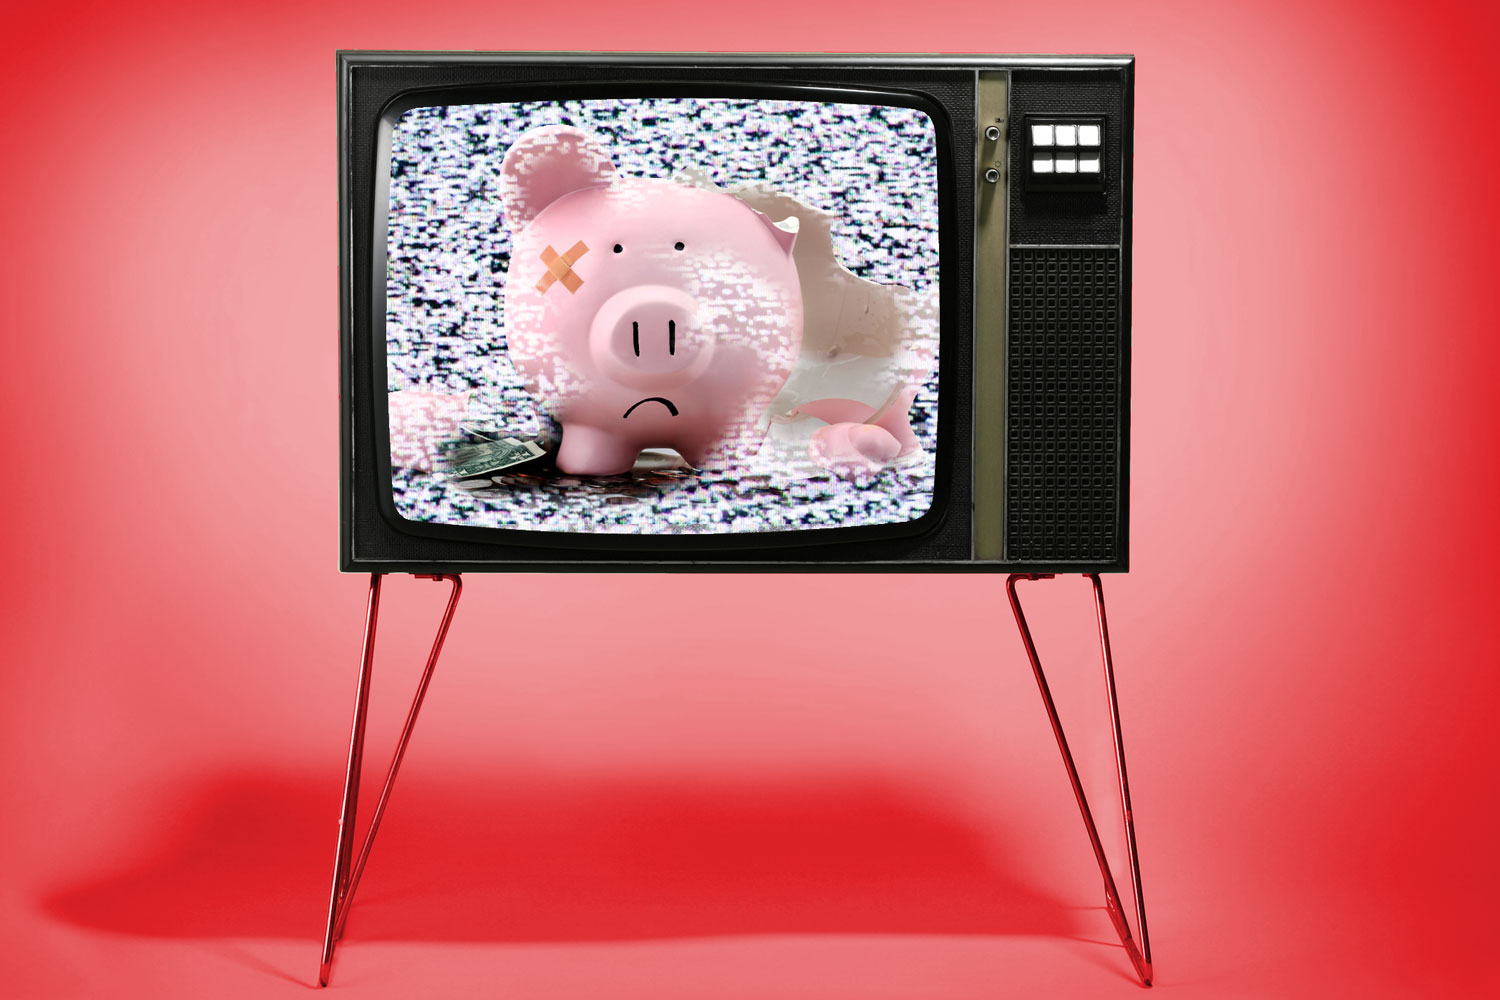 TV upfront spending now expected to decline by 27 percent this year, according to eMarketer